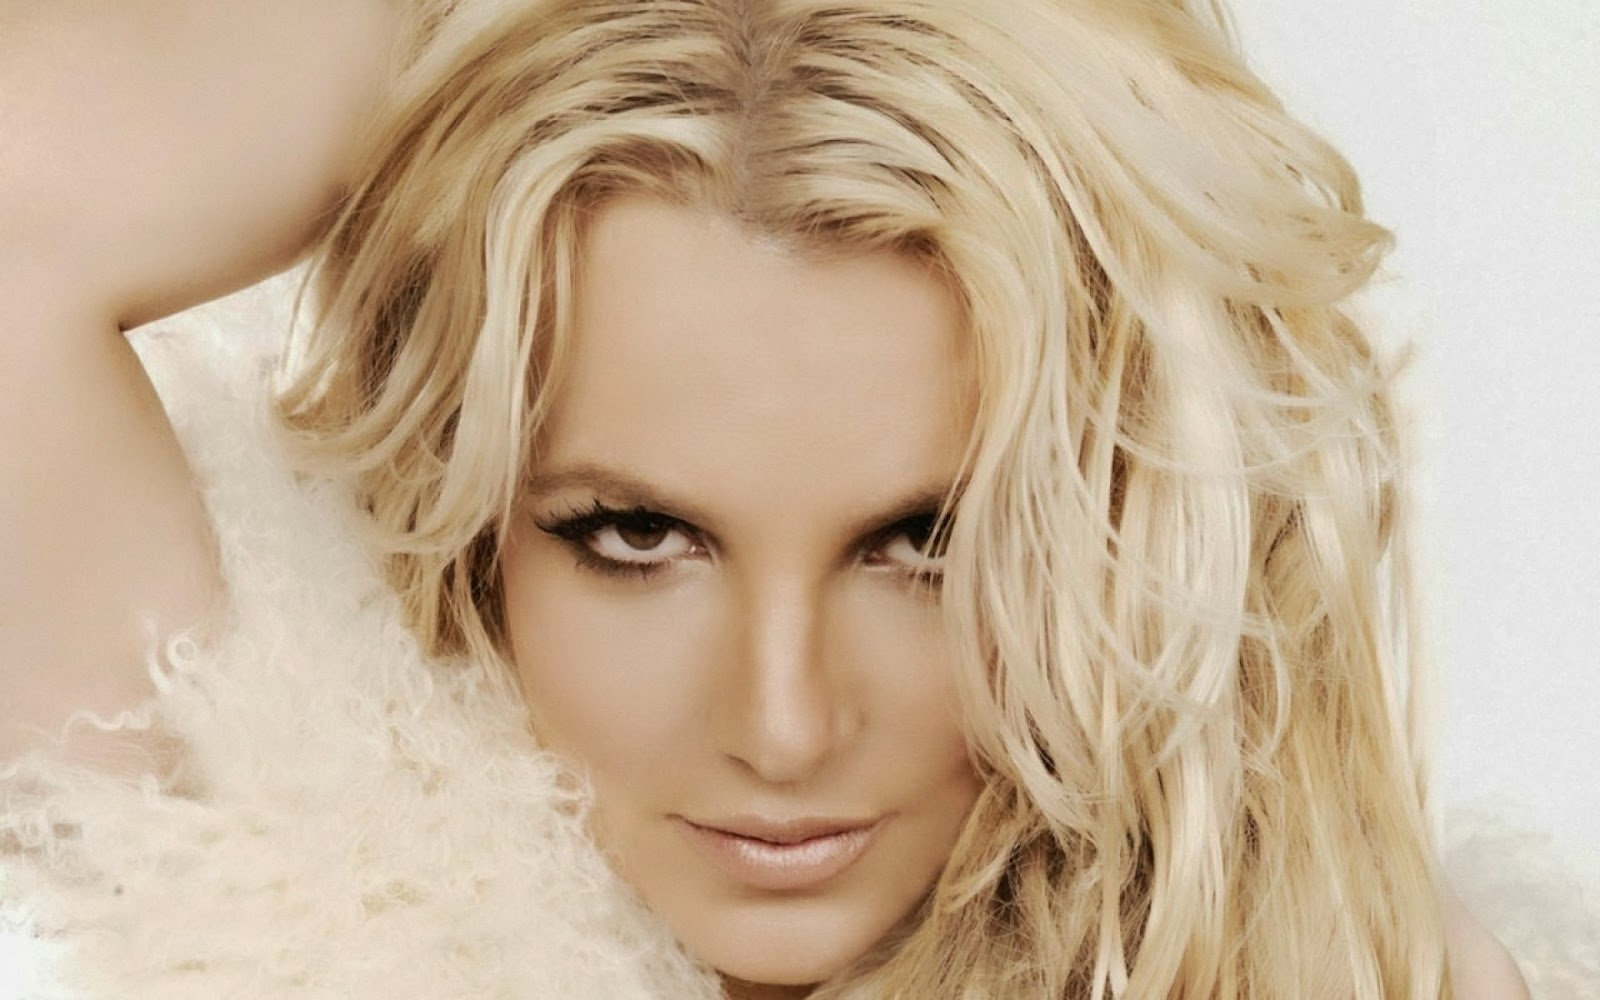 Britney+Spears+Hd+Wallpapers+Free+Download049